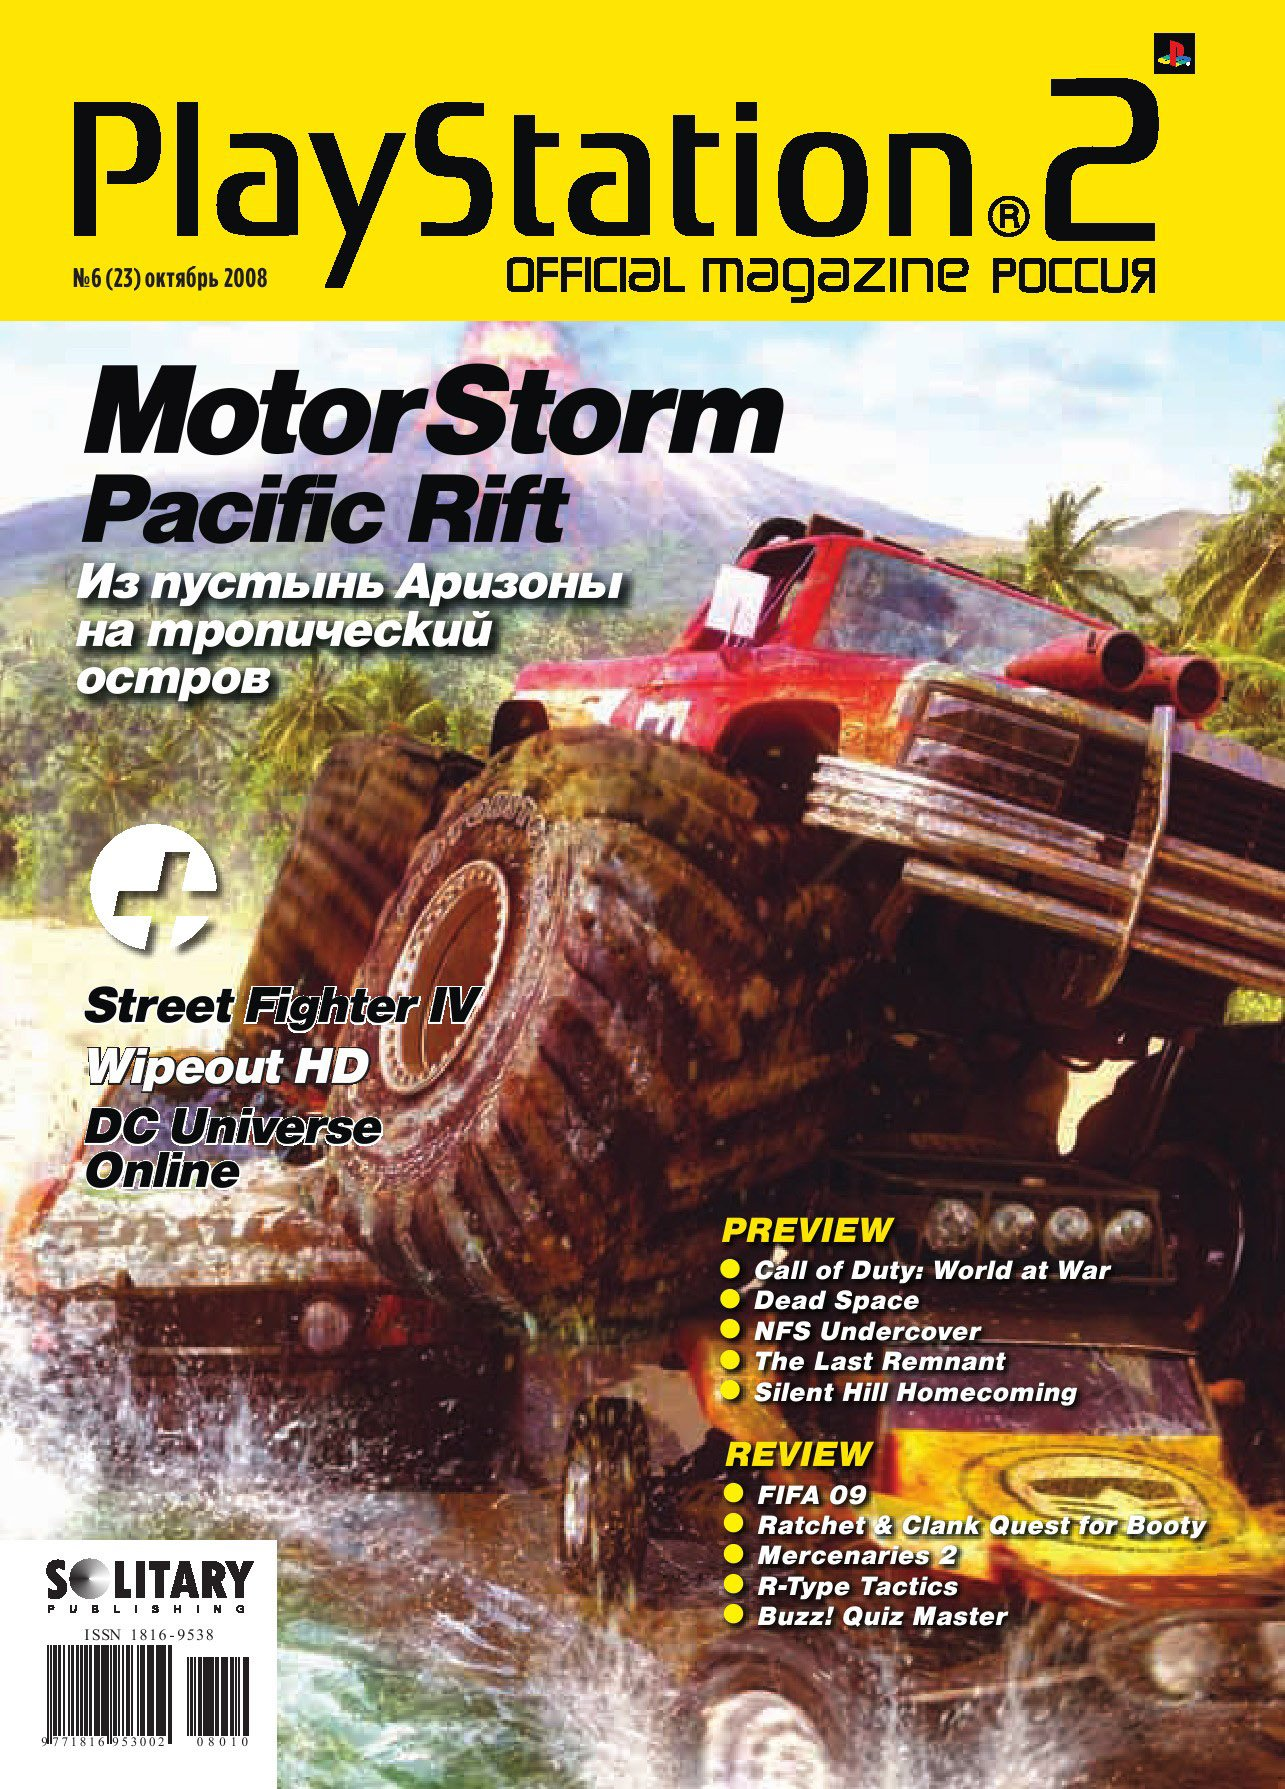 Playstation 2 Official Magazine (Russia) Issue 23 - Oct. '08